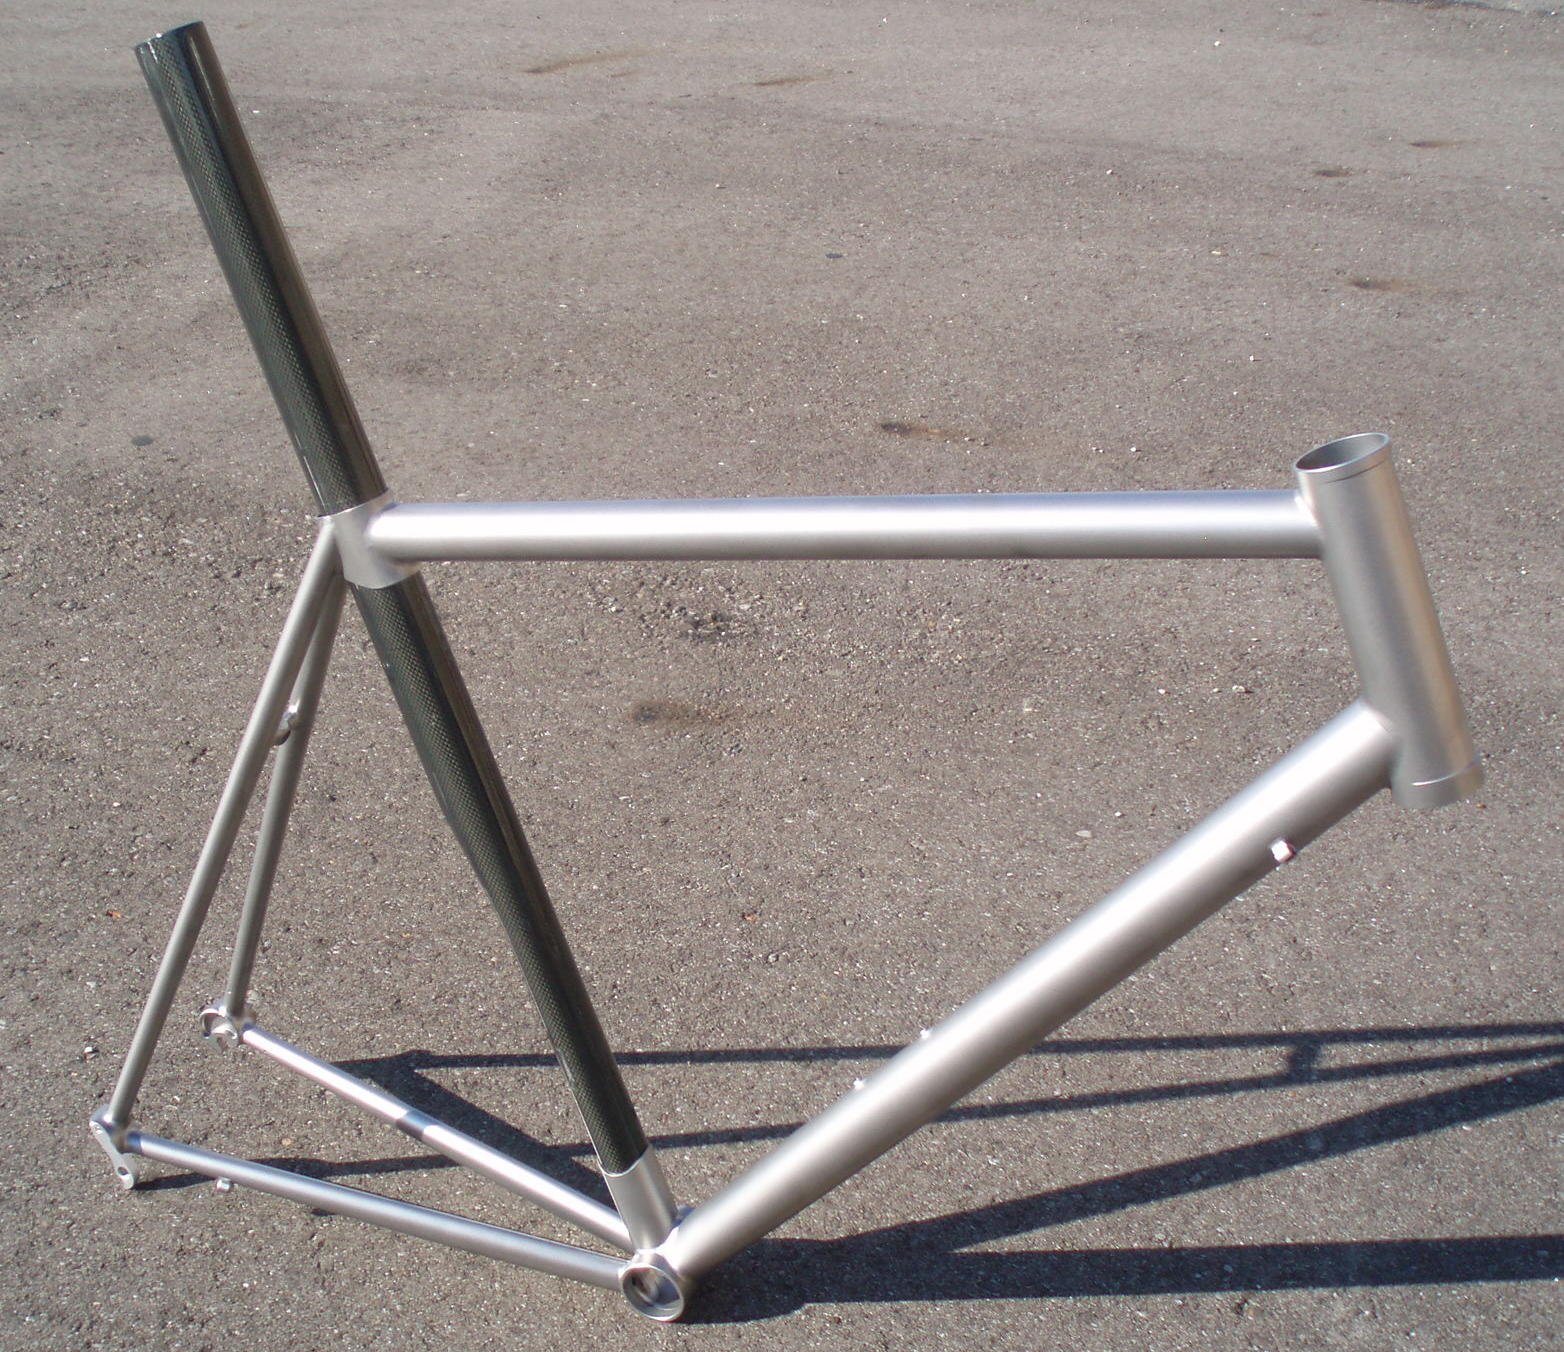 Quiring Cycles: Titanium/Carbon Frame with Tapered Steerer Headtube